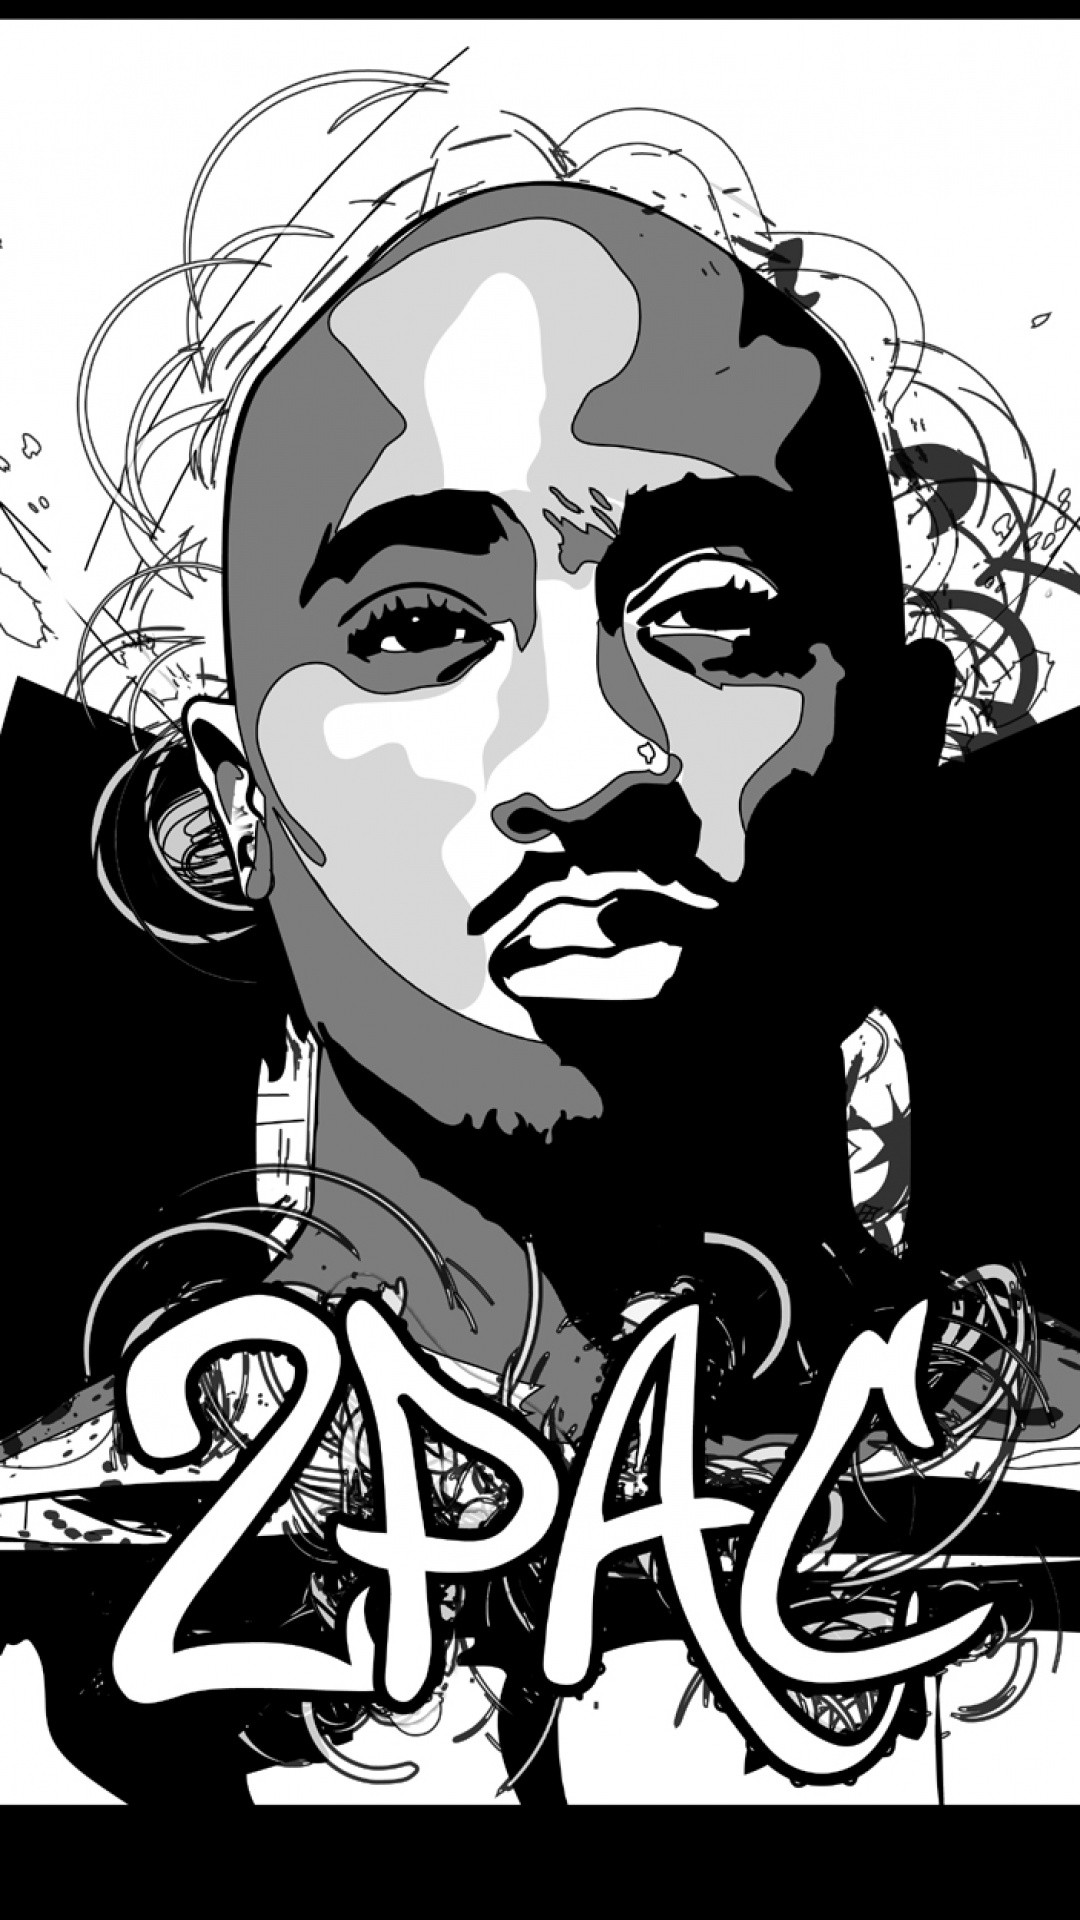 2Pac download wallpaper for iPhone